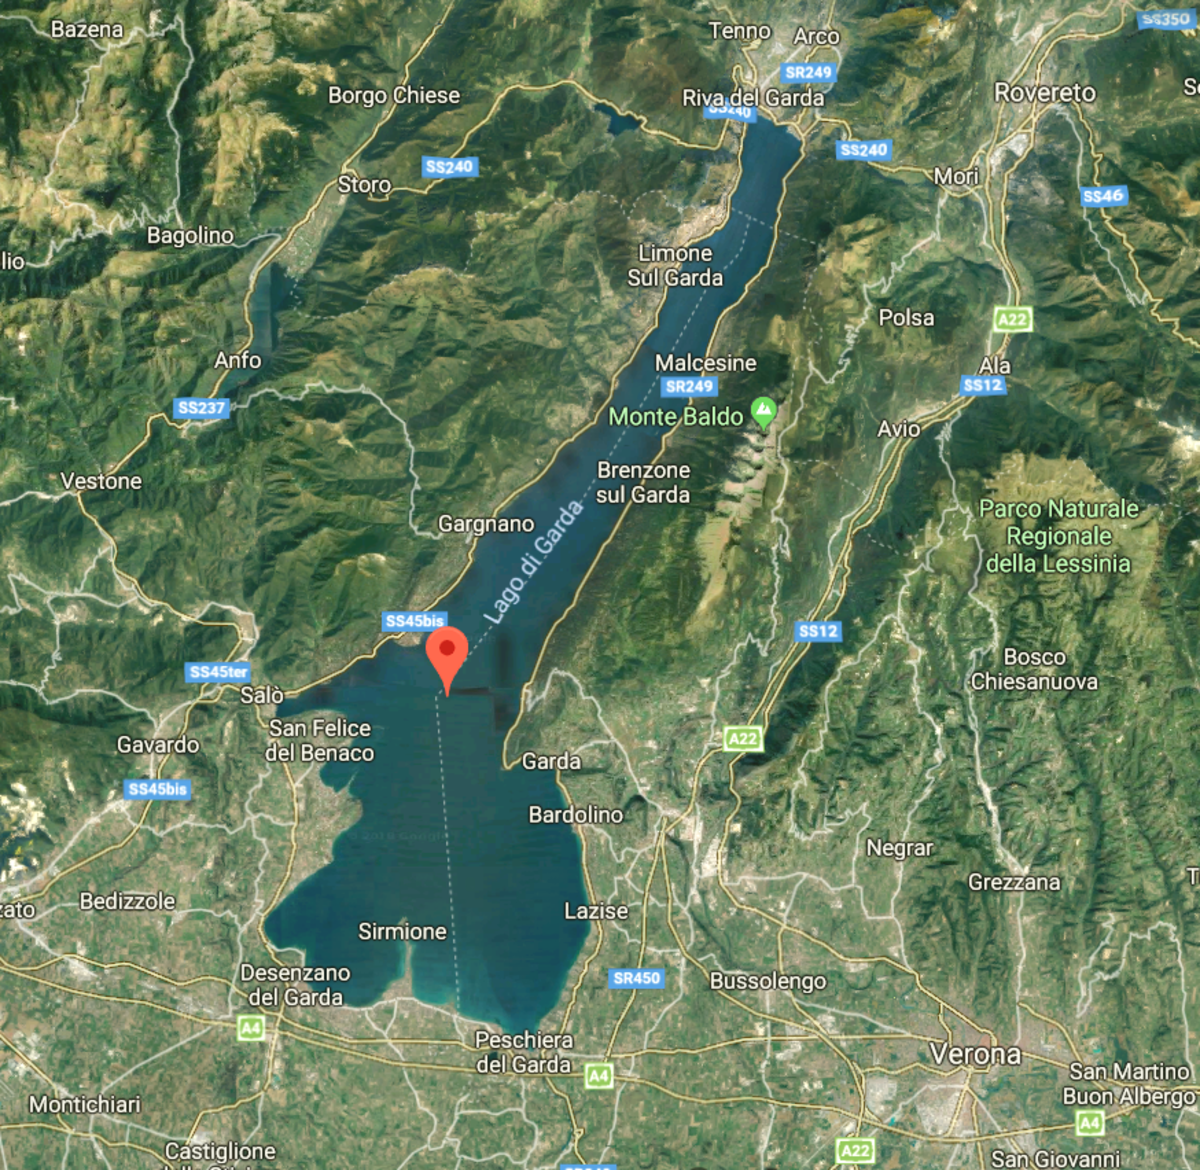 Lake Garda is surrounded by striking destinations.